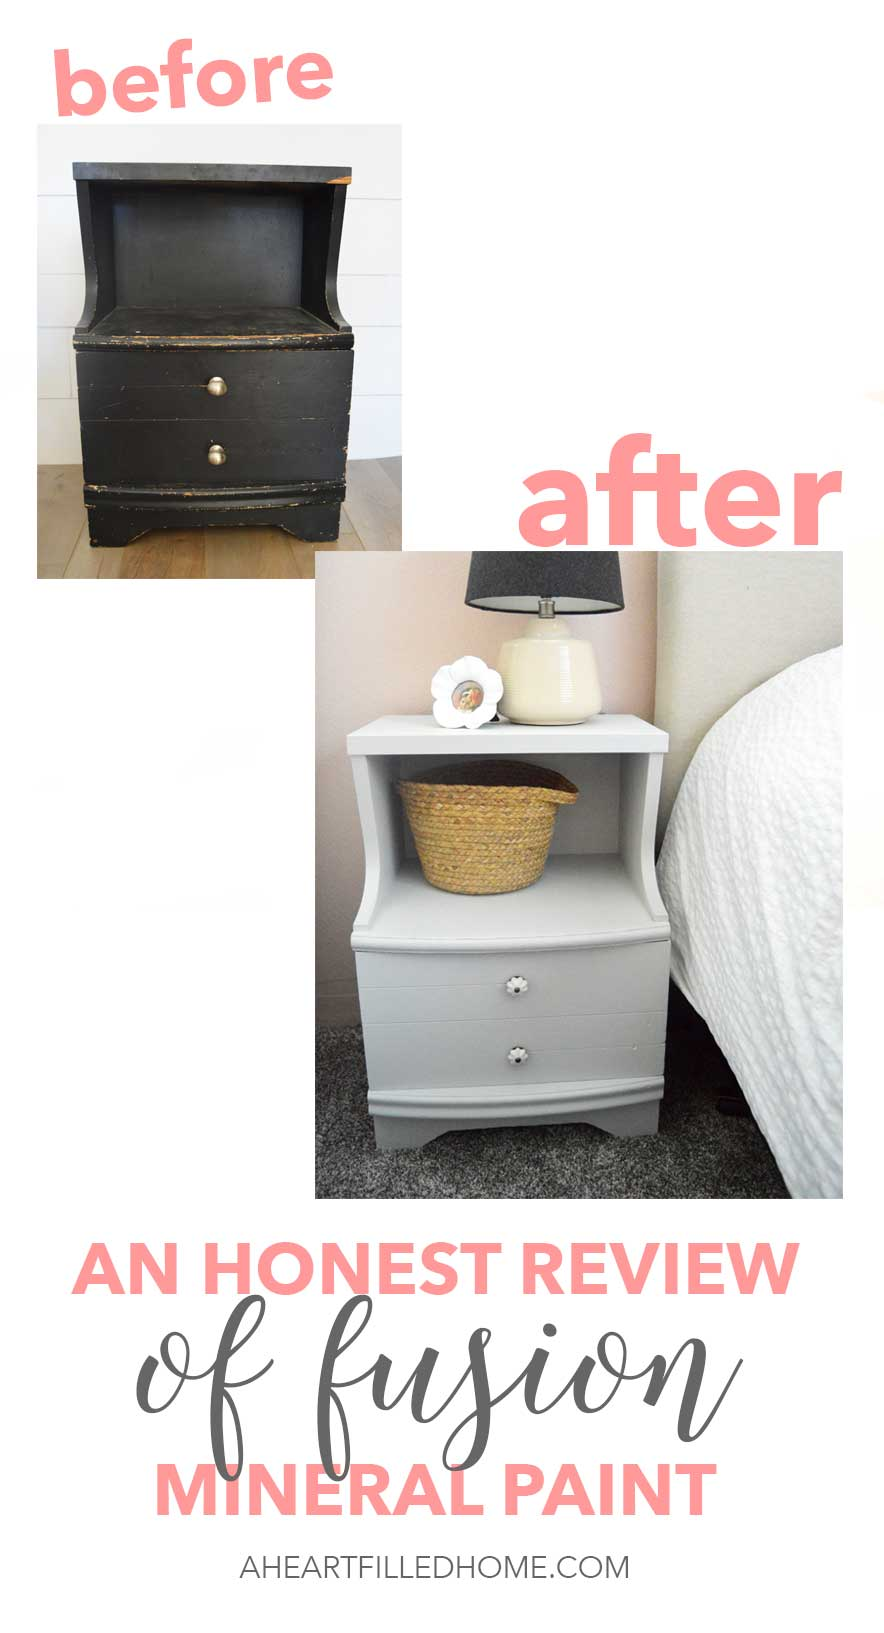 An honest review of fusion mineral paint. I transformed this side table using fusion paint and am sharing the amazing before and after!